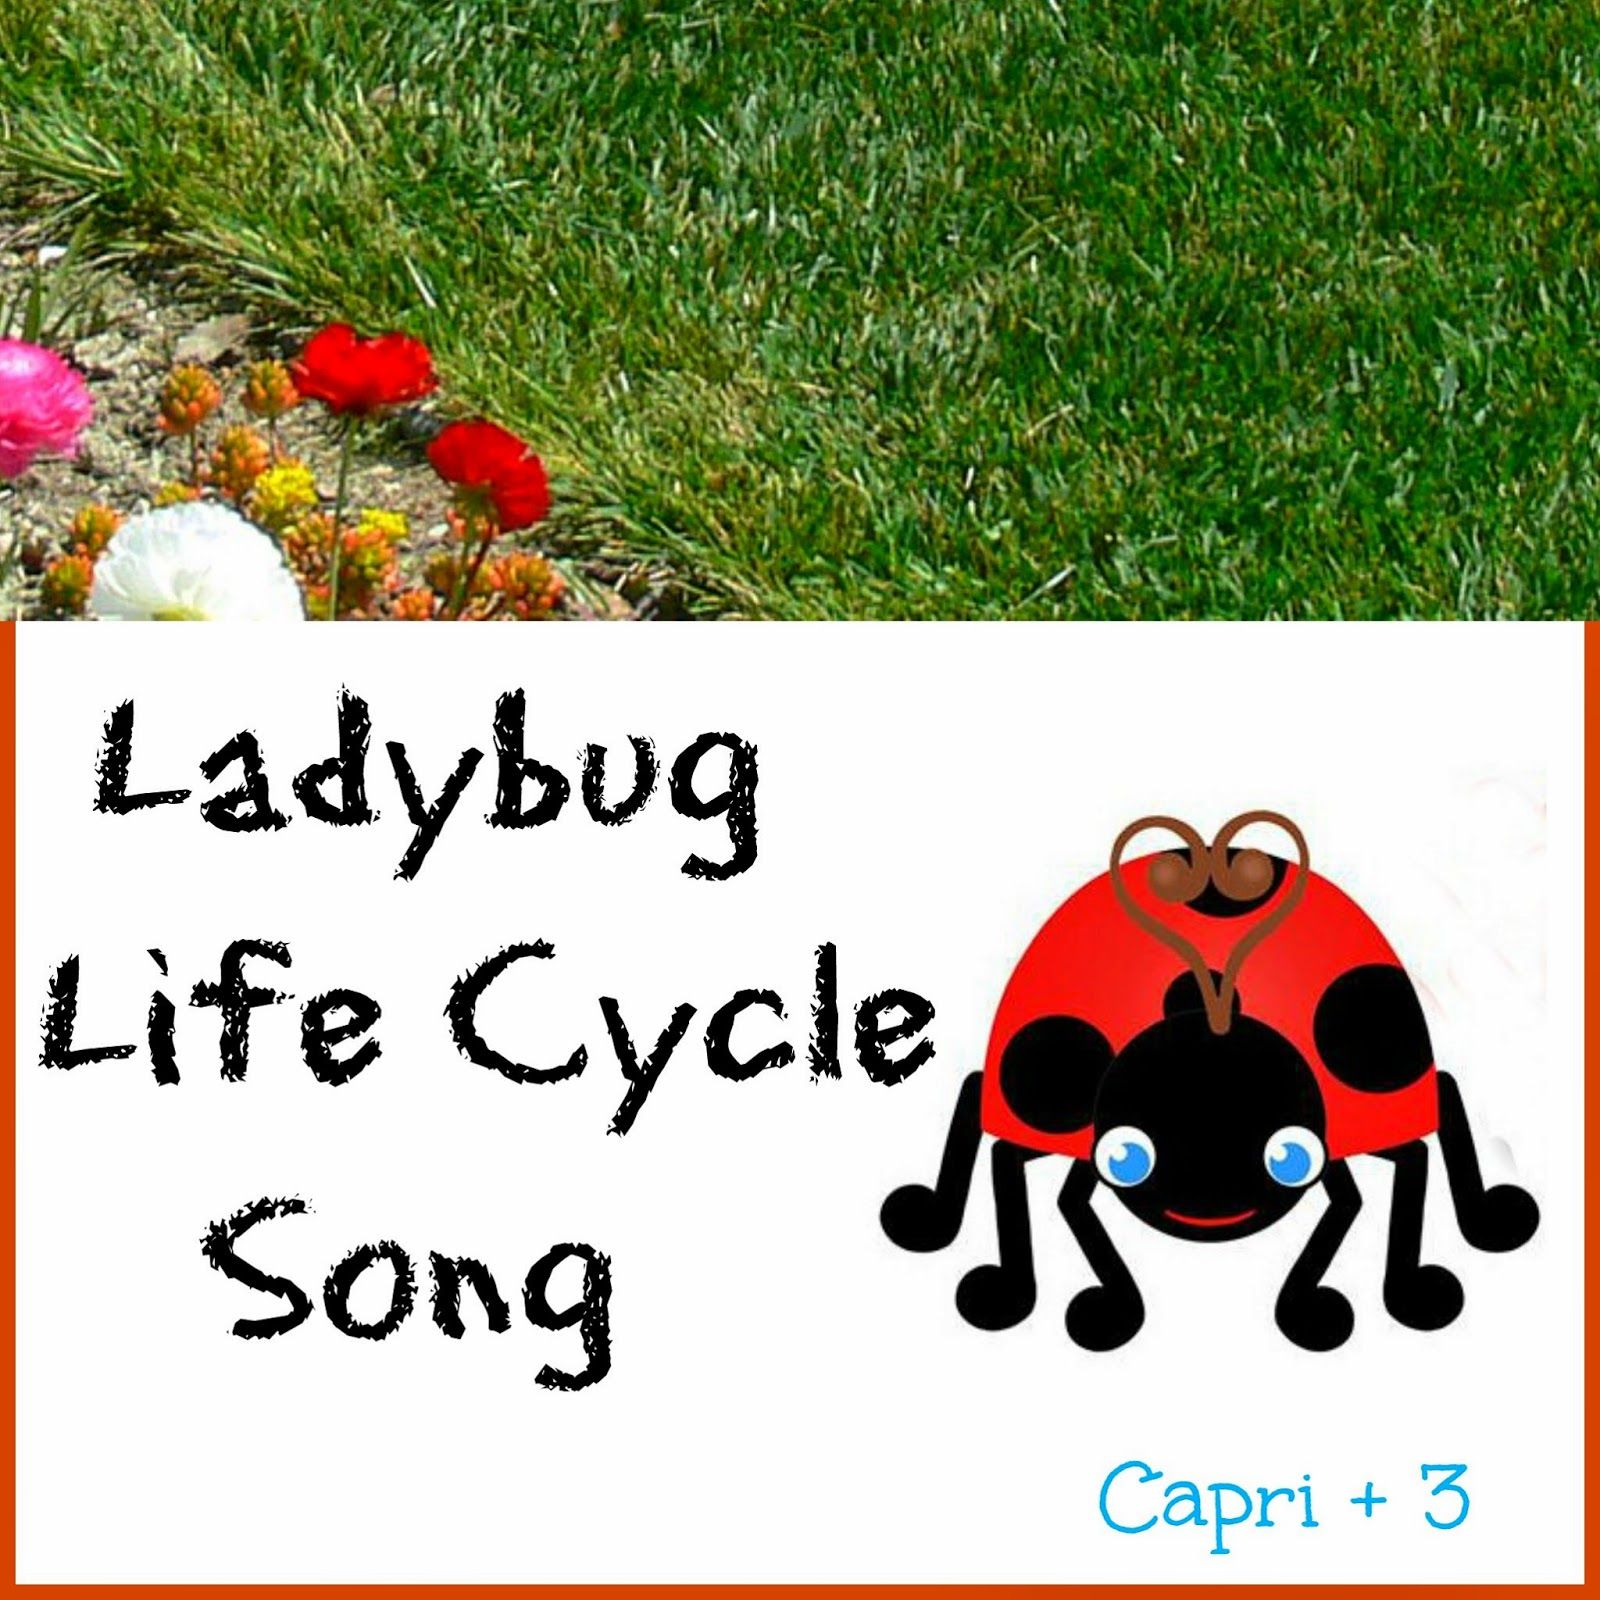 Ladybug Life Cycle Song Lyrics To The Tune Of The Wheels